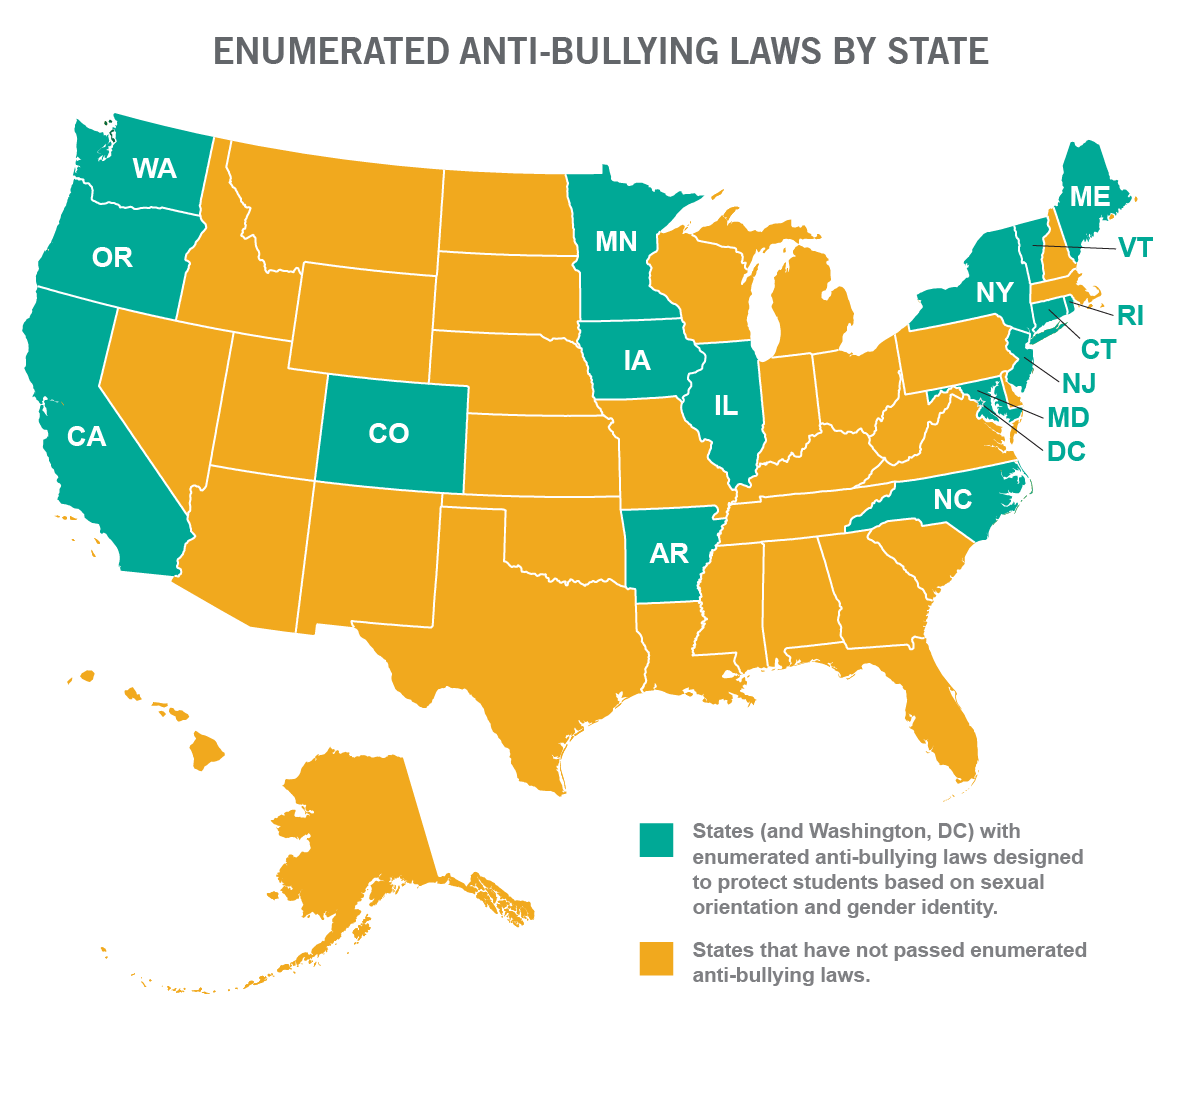 GLSEN: Enumerated anti-bullying laws by state